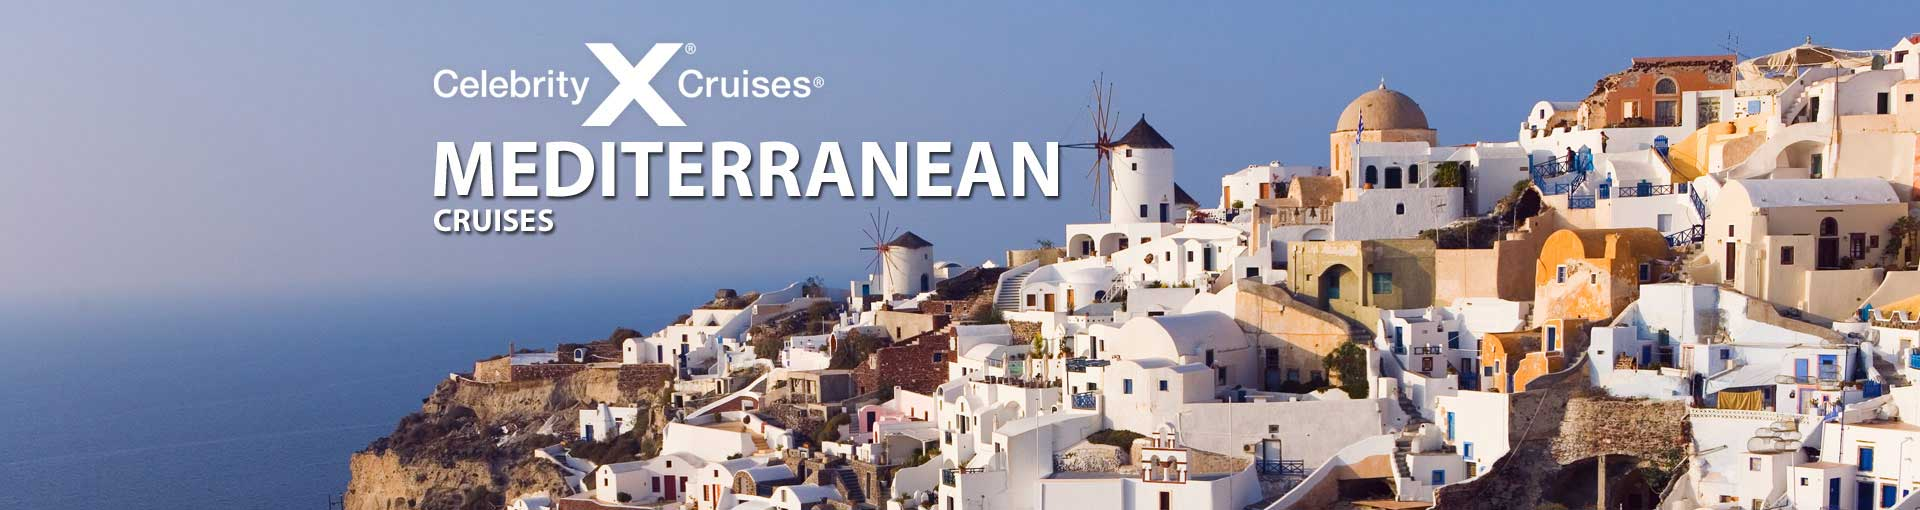 Celebrity Constellation Cruise Review (Mediterranean Cruise)